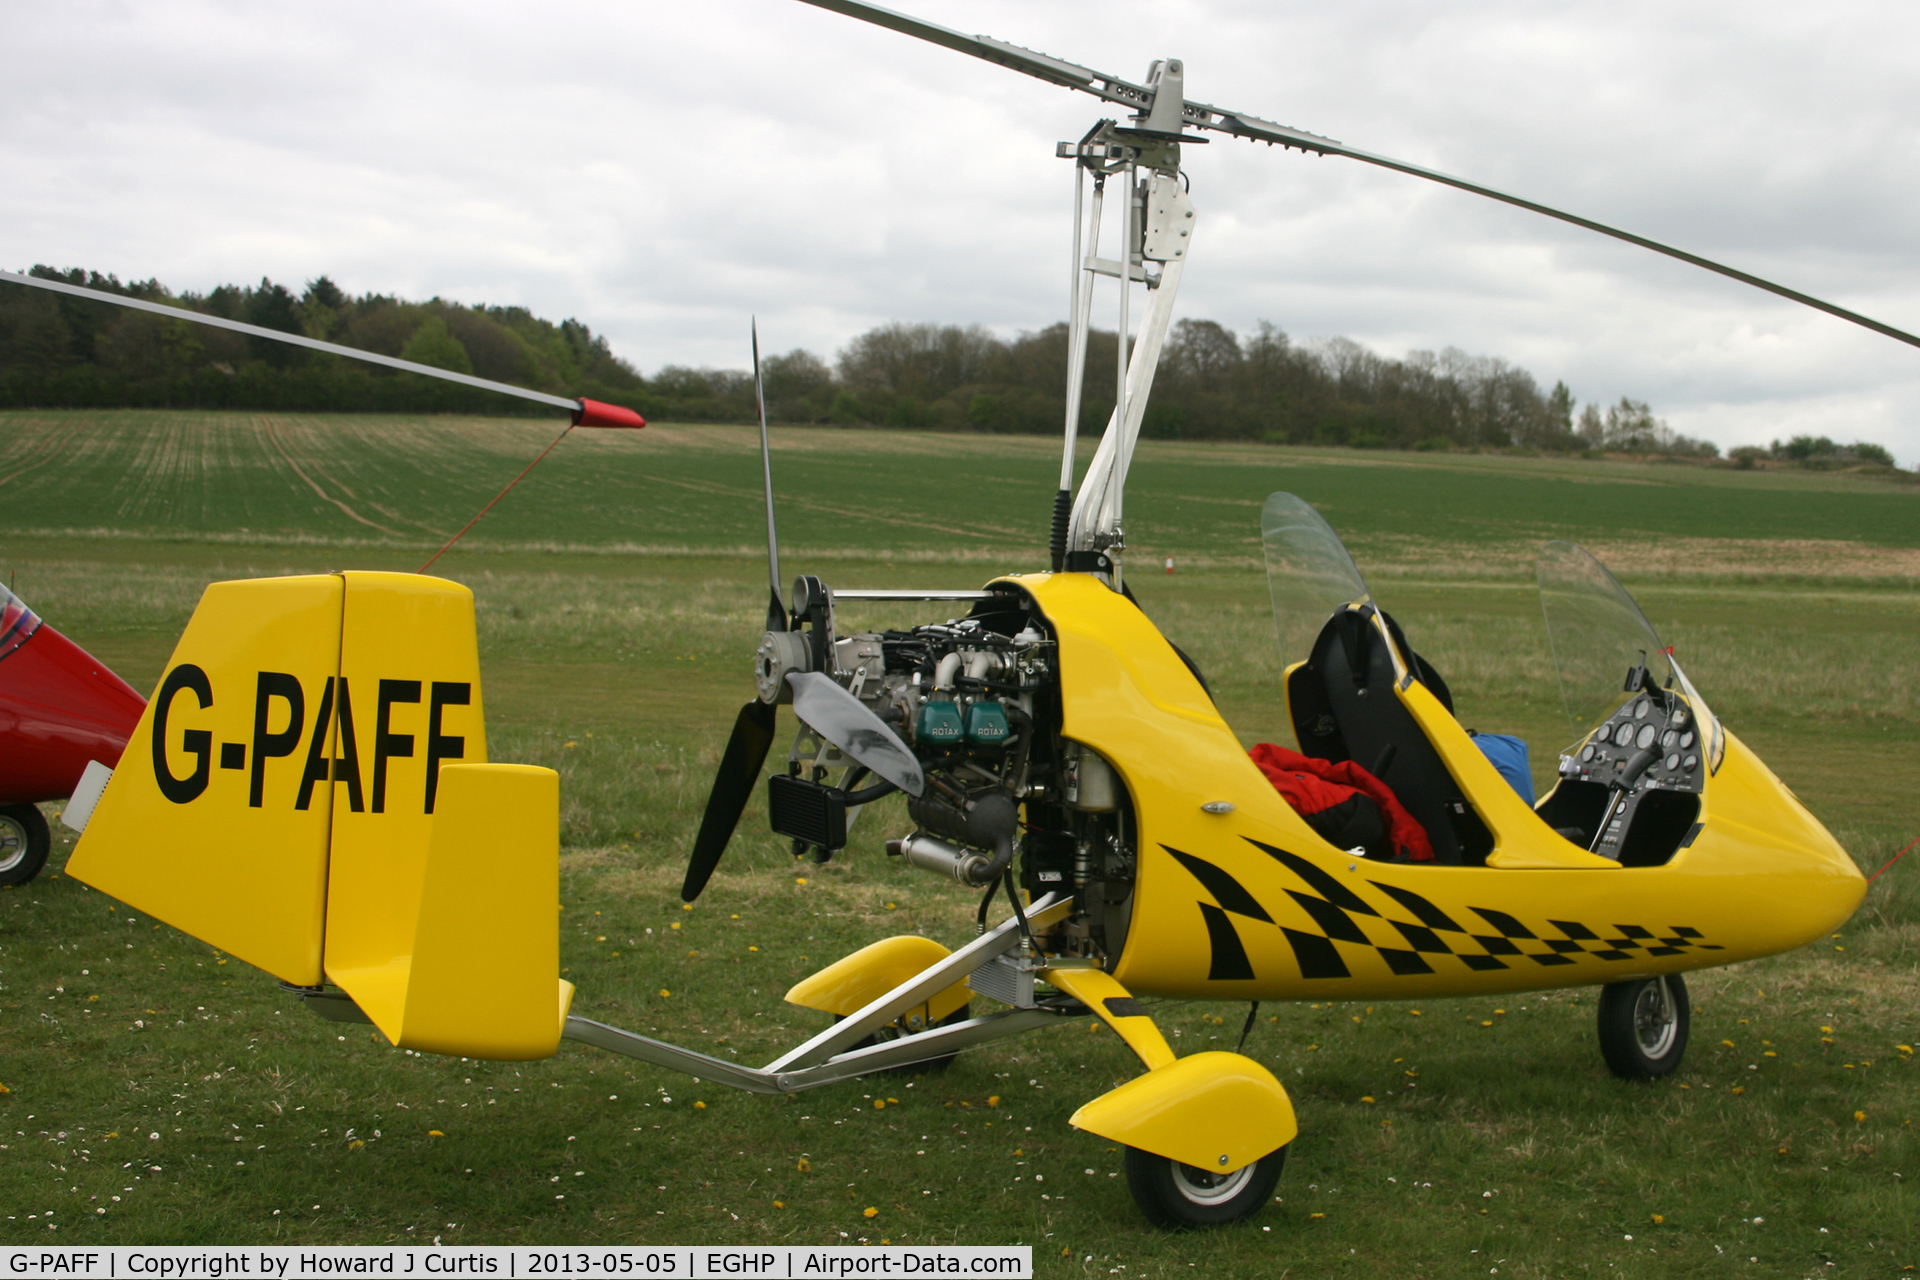 G-PAFF, 2011 Rotorsport UK MTOsport C/N RSUK/MTOS/039, Privately owned, at the Microlight Trade Fair.